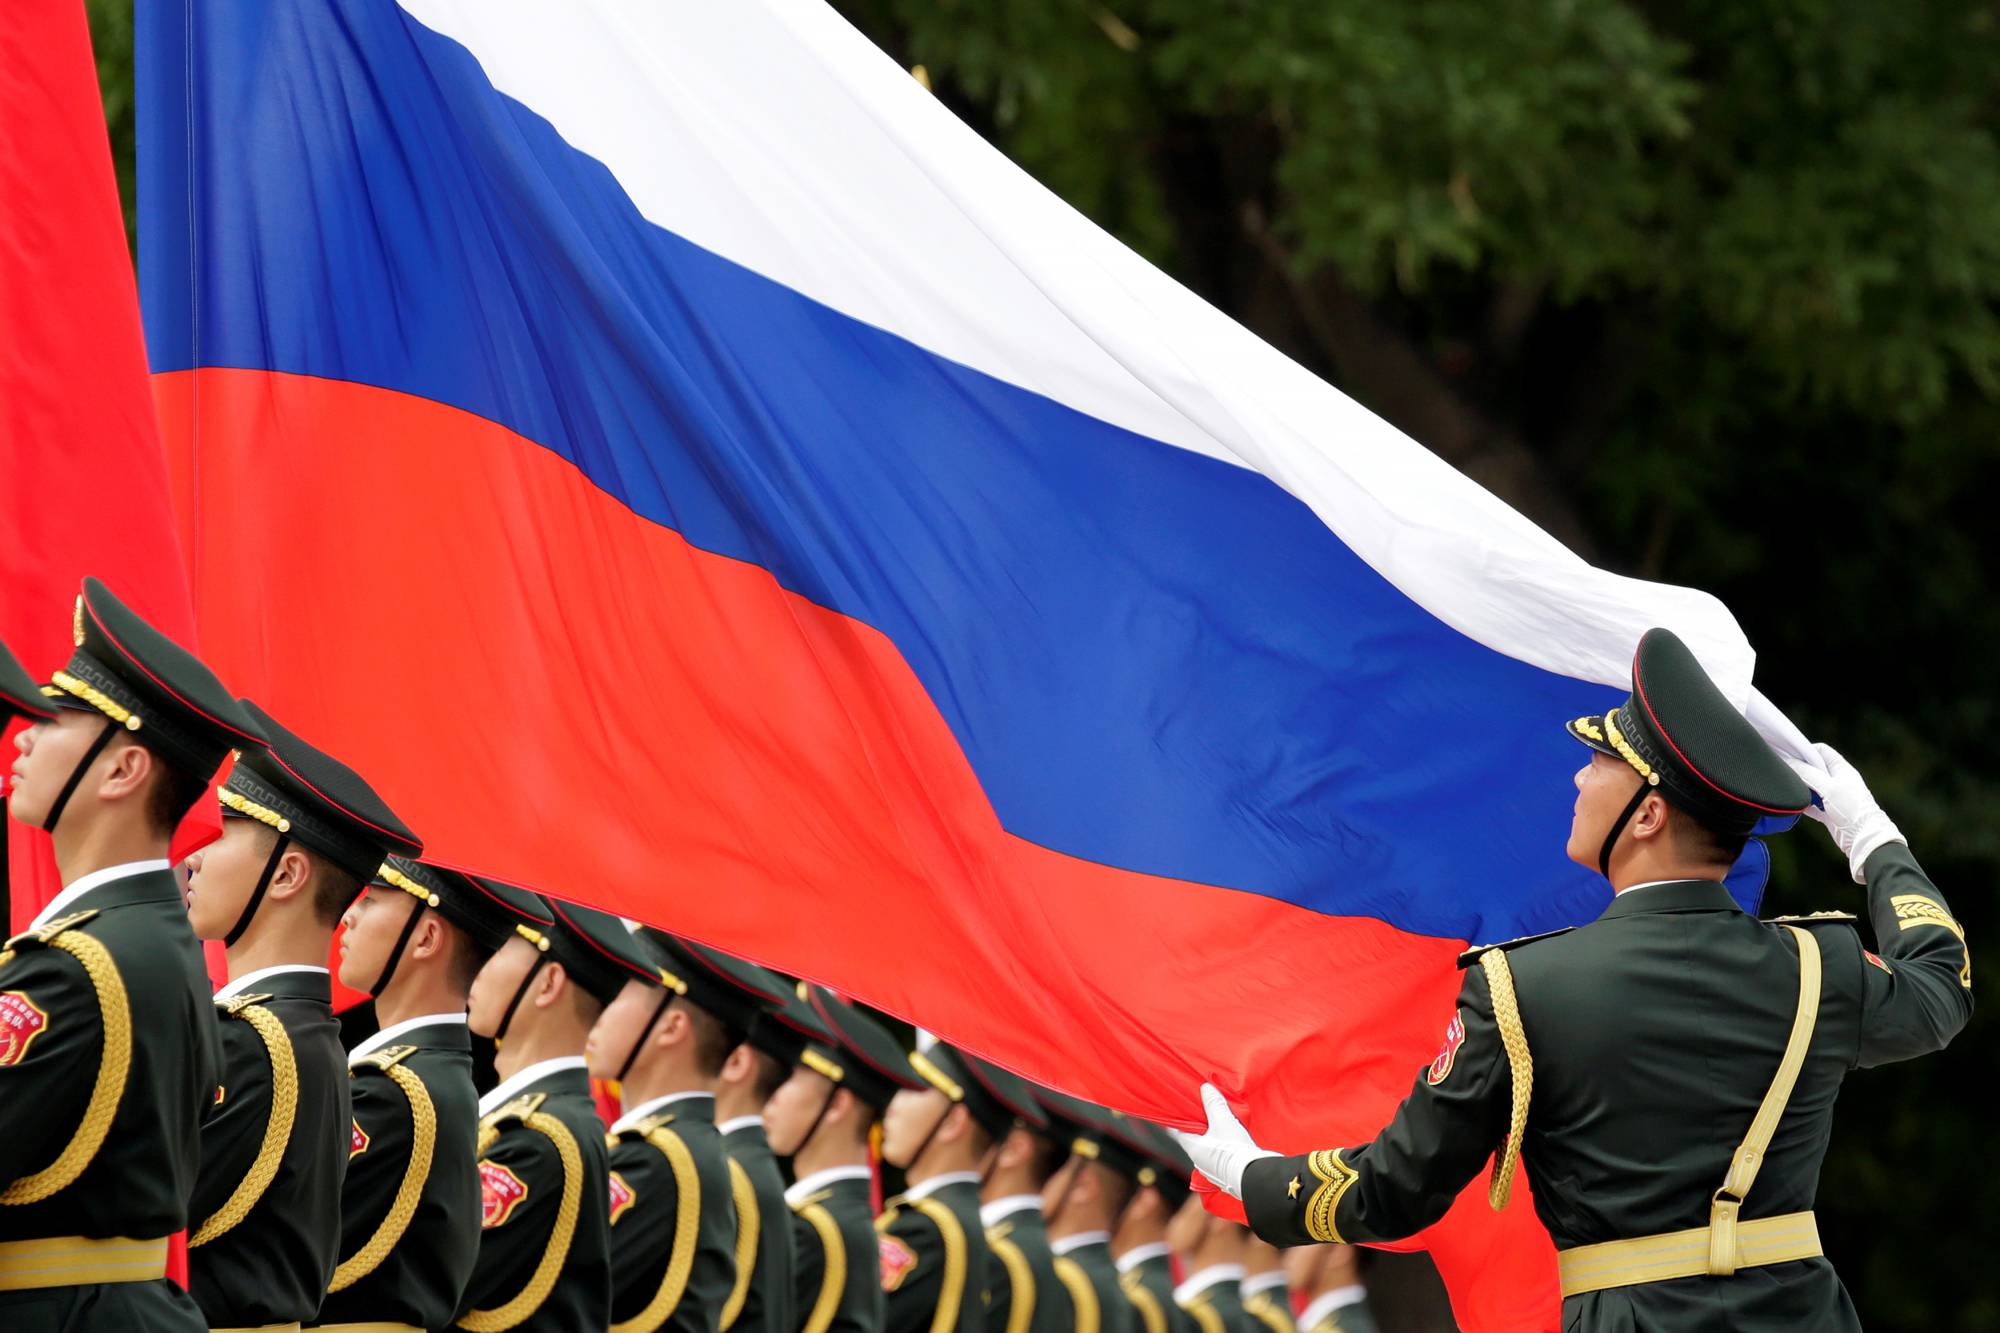 An honour guard holds a Russia flag during preparations for a welcome ceremony for Russian President Vladimir Putin outside the Great Hall of the People in Beijing, China